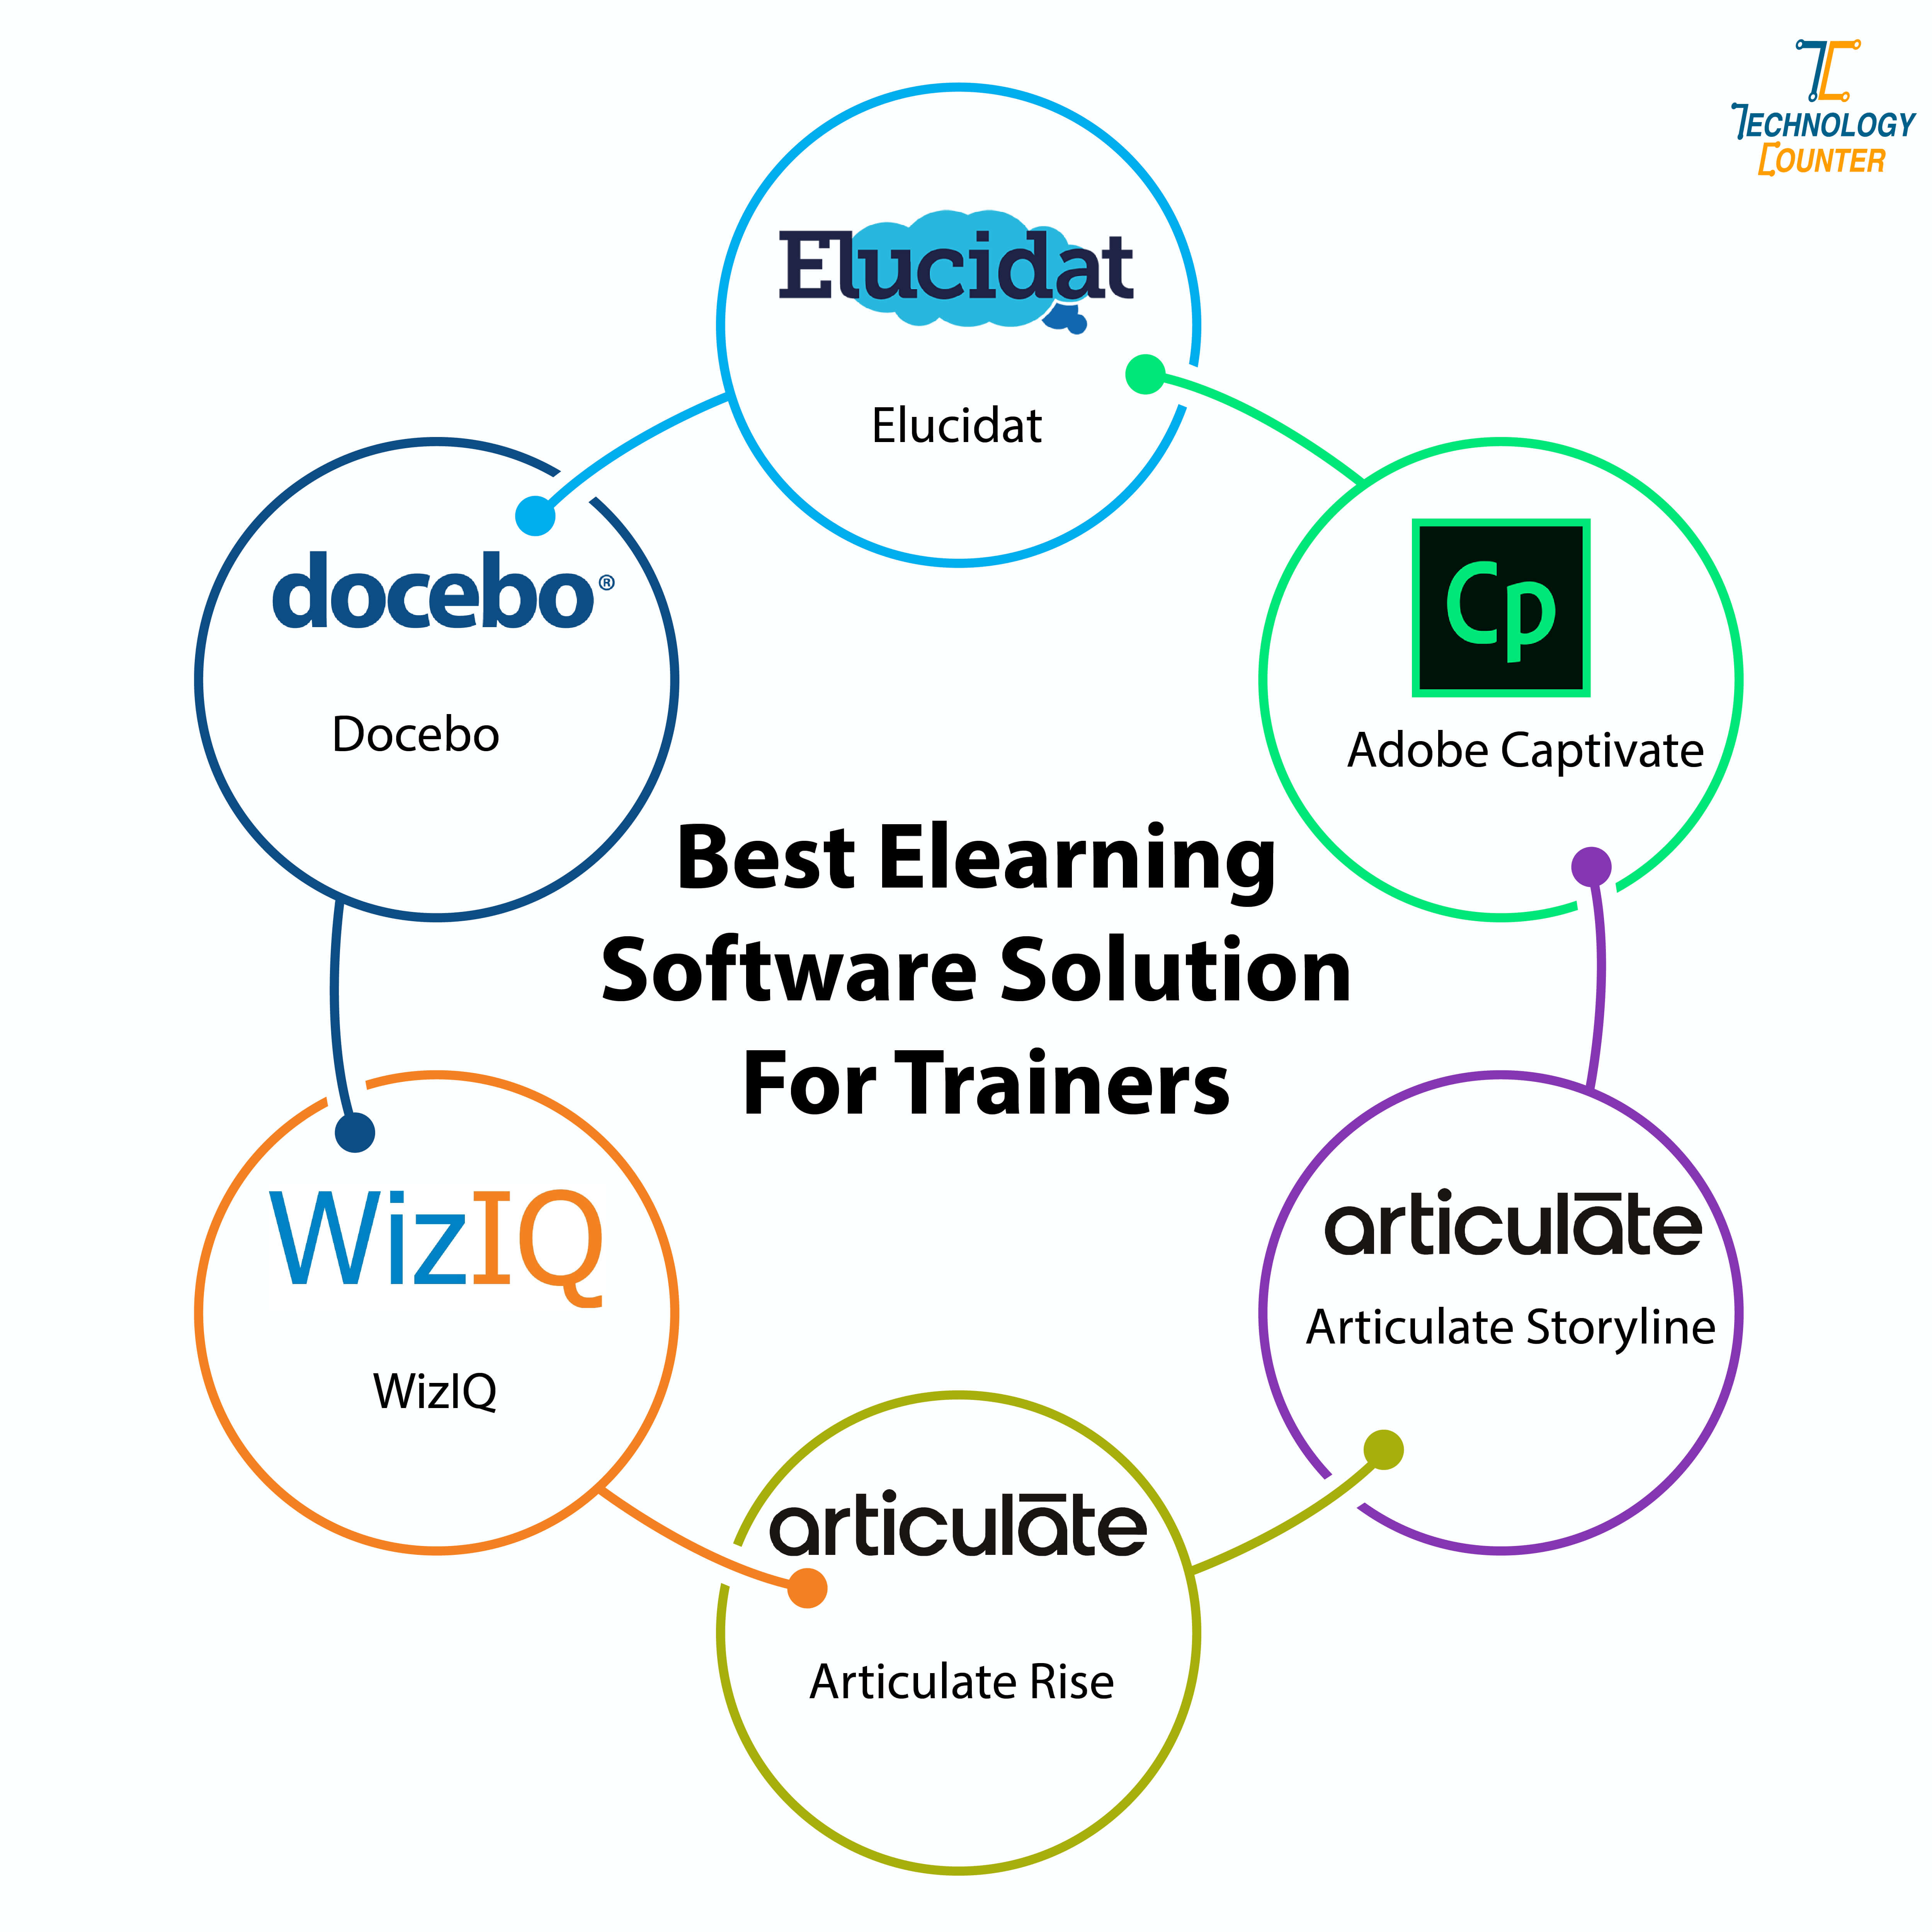 Best eLearning Software Solution For Trainers